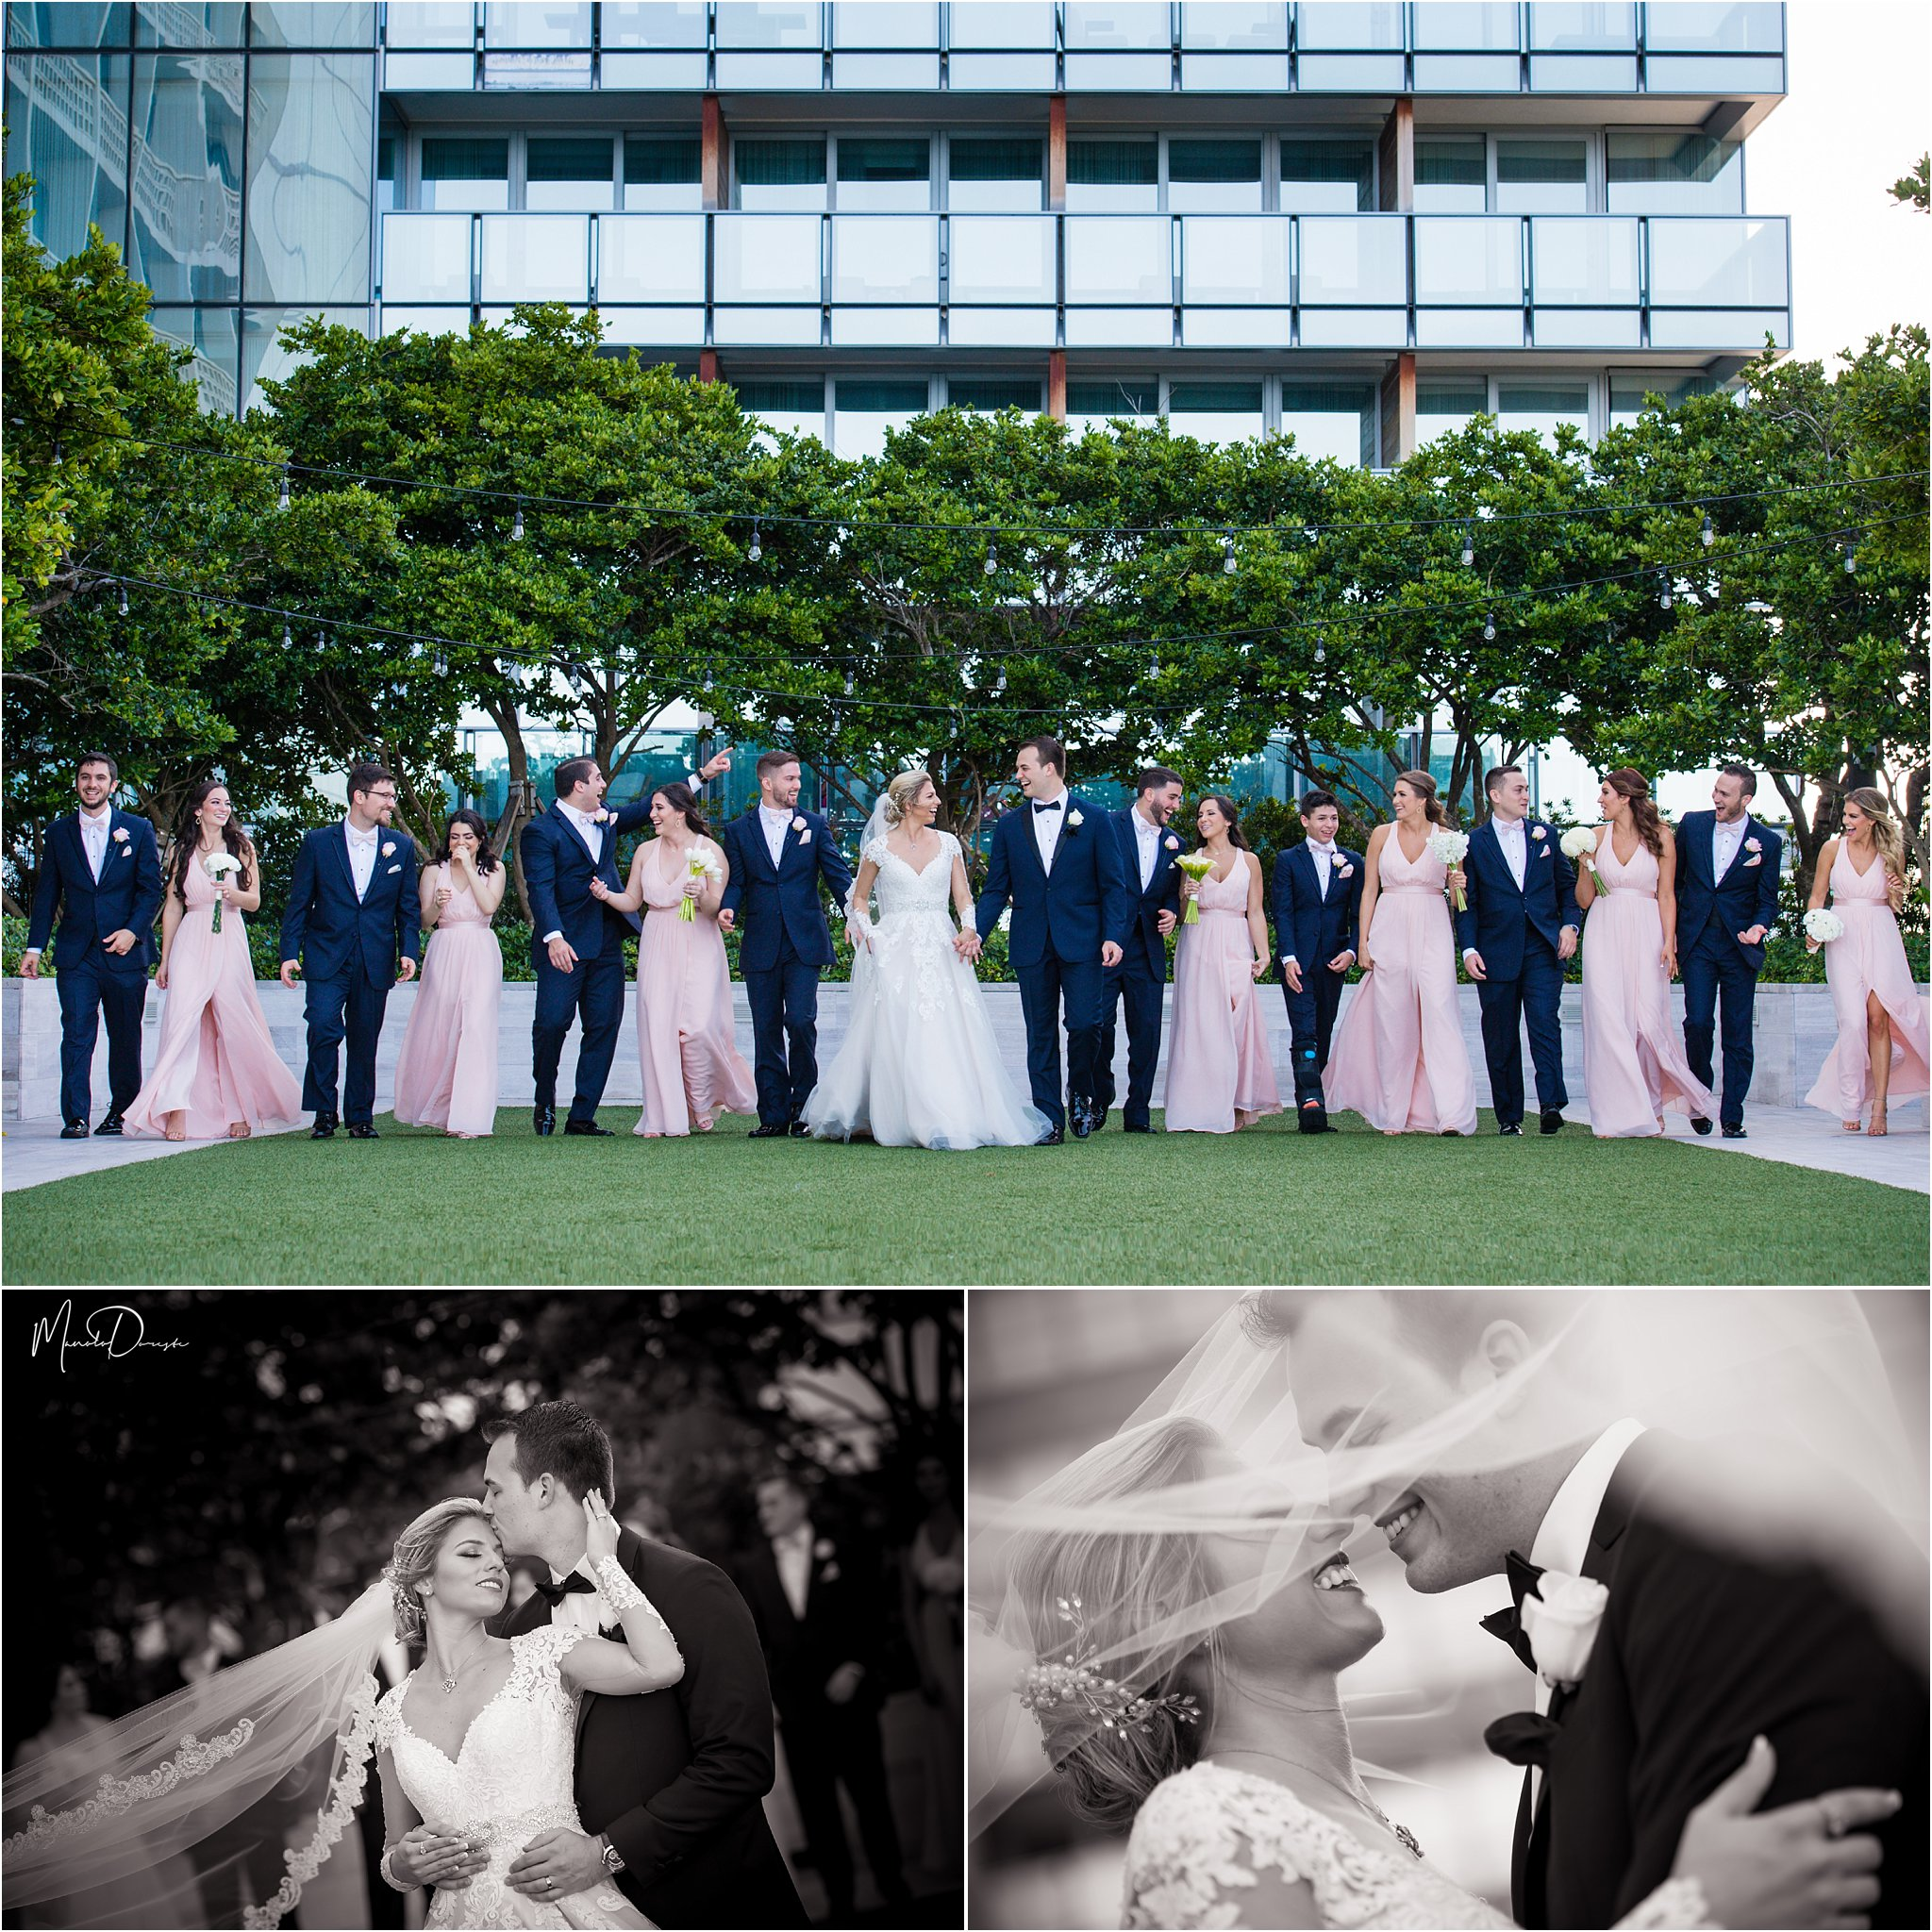 0266_ManoloDoreste_InFocusStudios_Wedding_Family_Photography_Miami_MiamiPhotographer.jpg